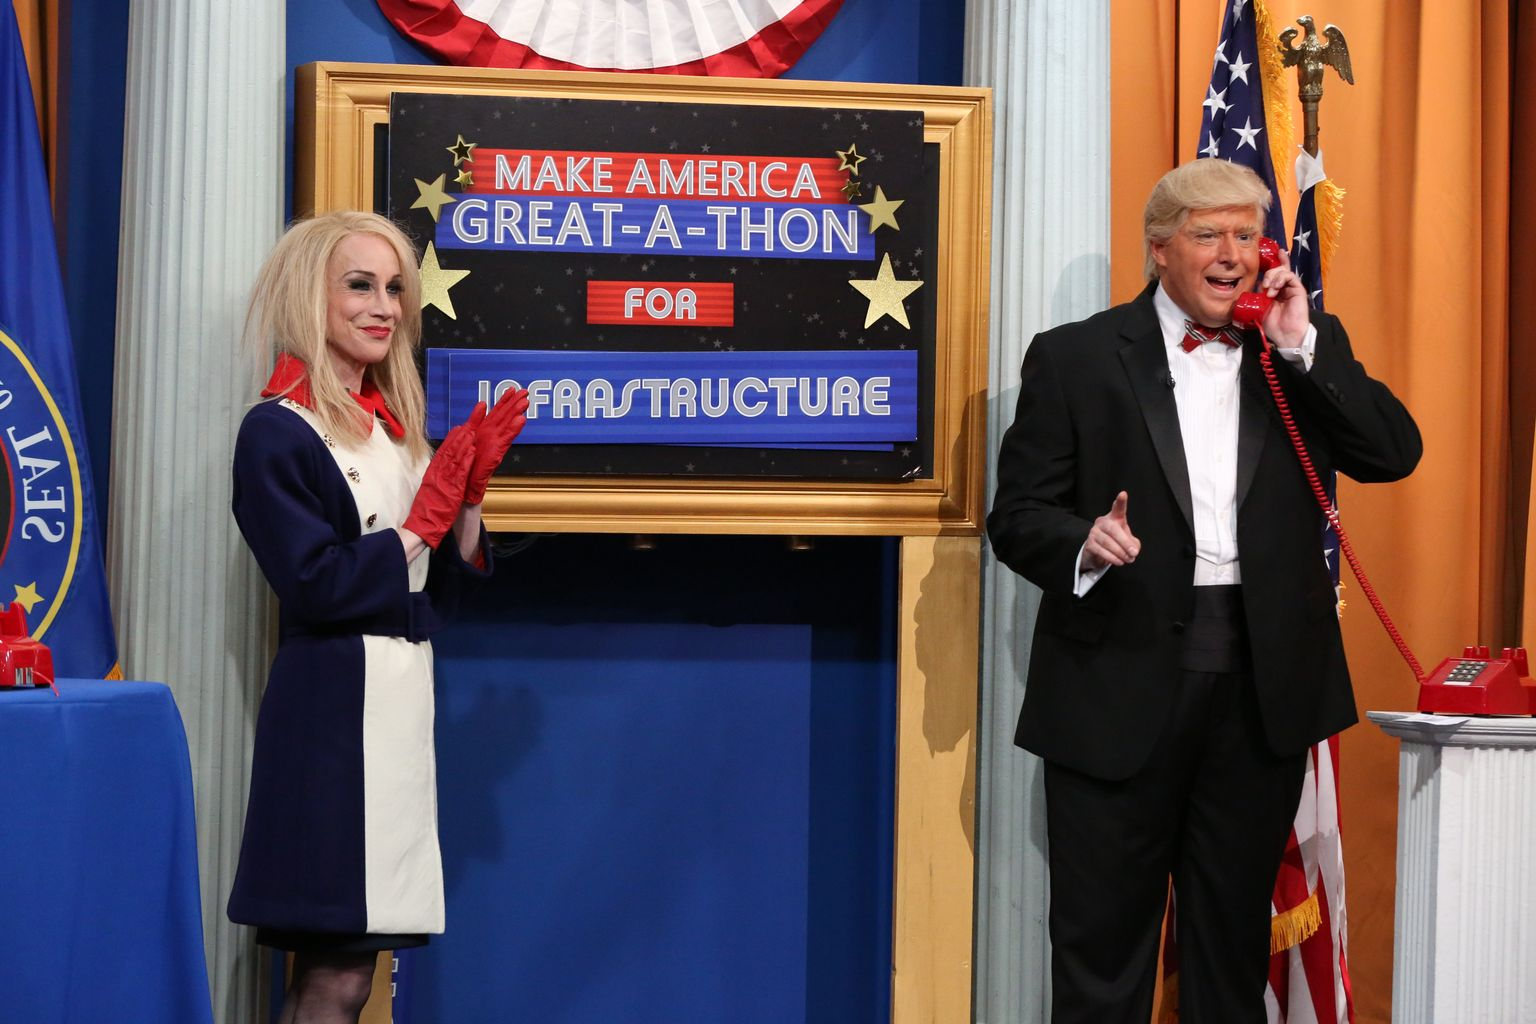 Comedy Central teases Kathy Griffin's performance as Kellyanne Conway